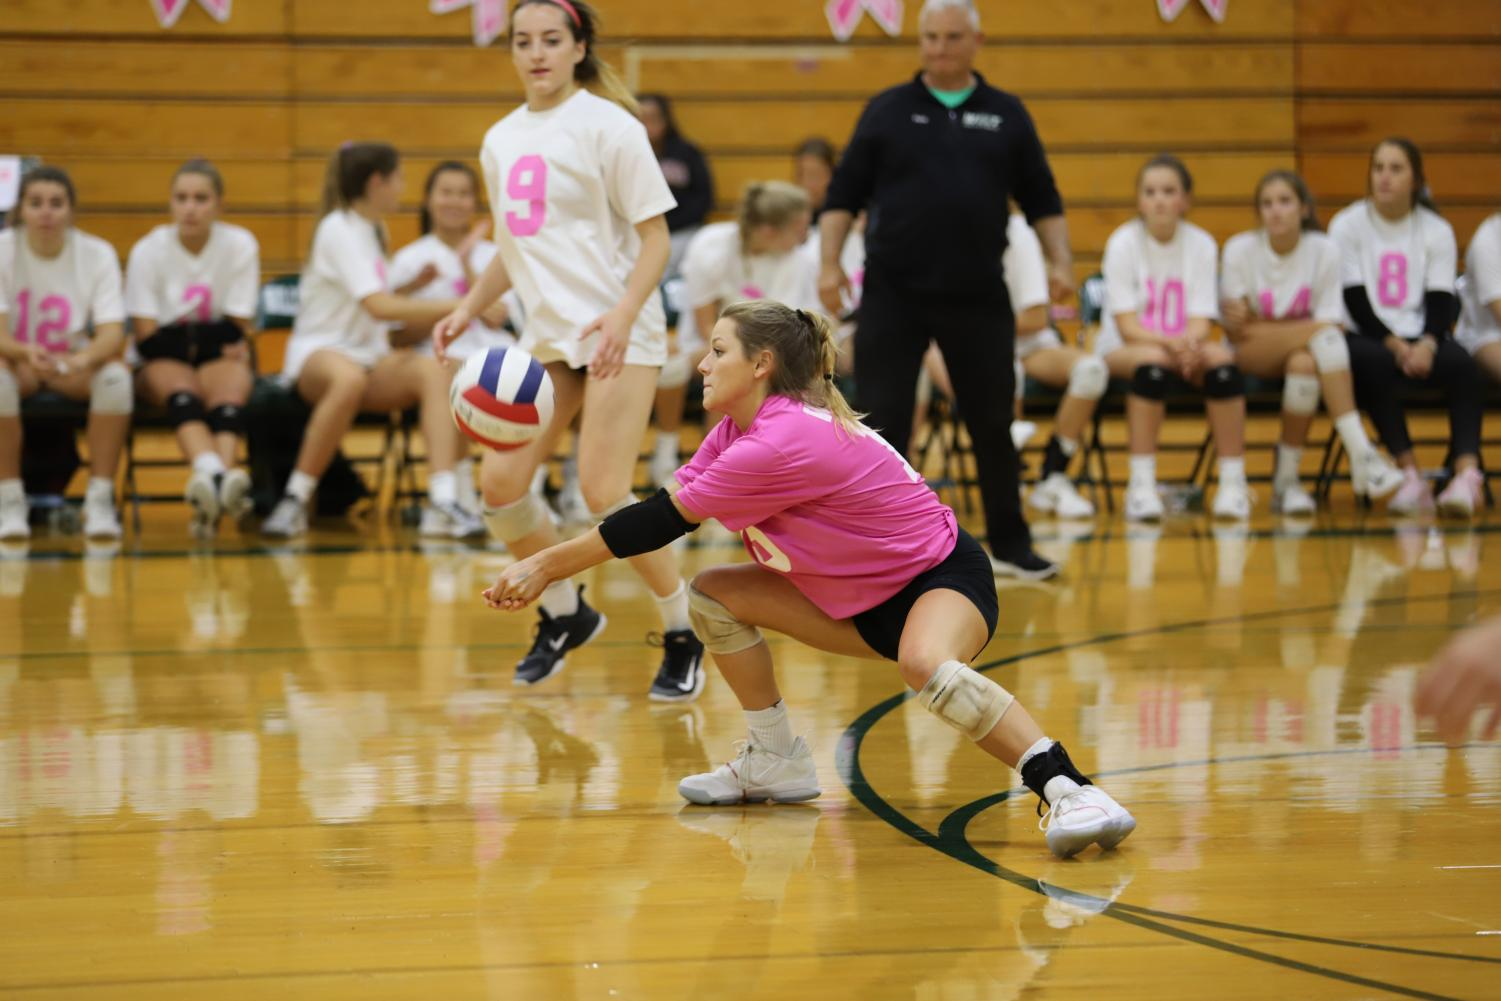 Libero+Katie+Ryan+%28senior%29+digs+the+ball.+Katie+dressed+in+a+pink+jersey+to+promote+the+theme+of+breast+cancer.